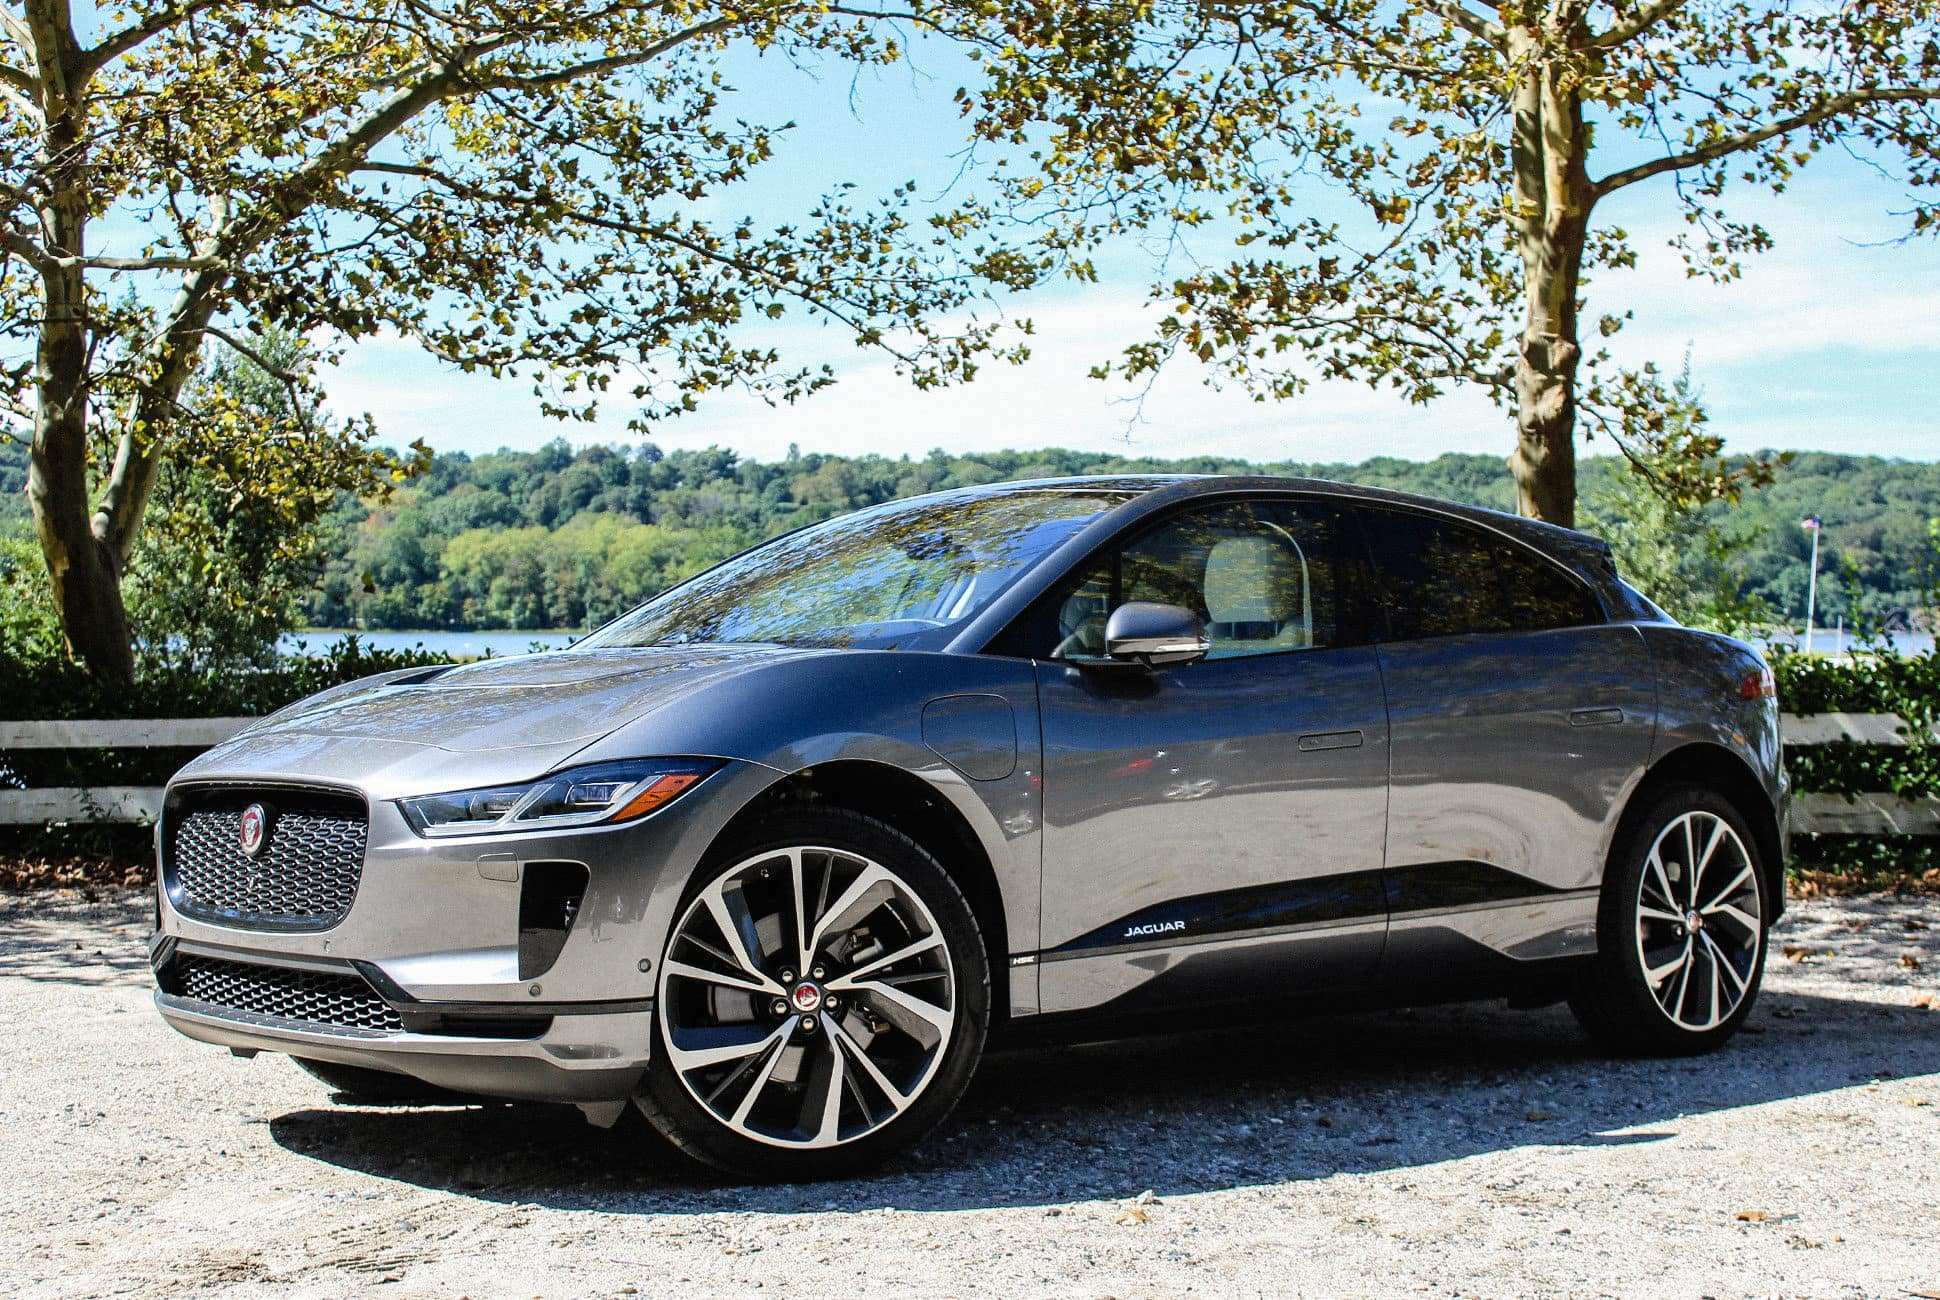 96 A Jaguar I Pace 2020 Updates Price Design and Review